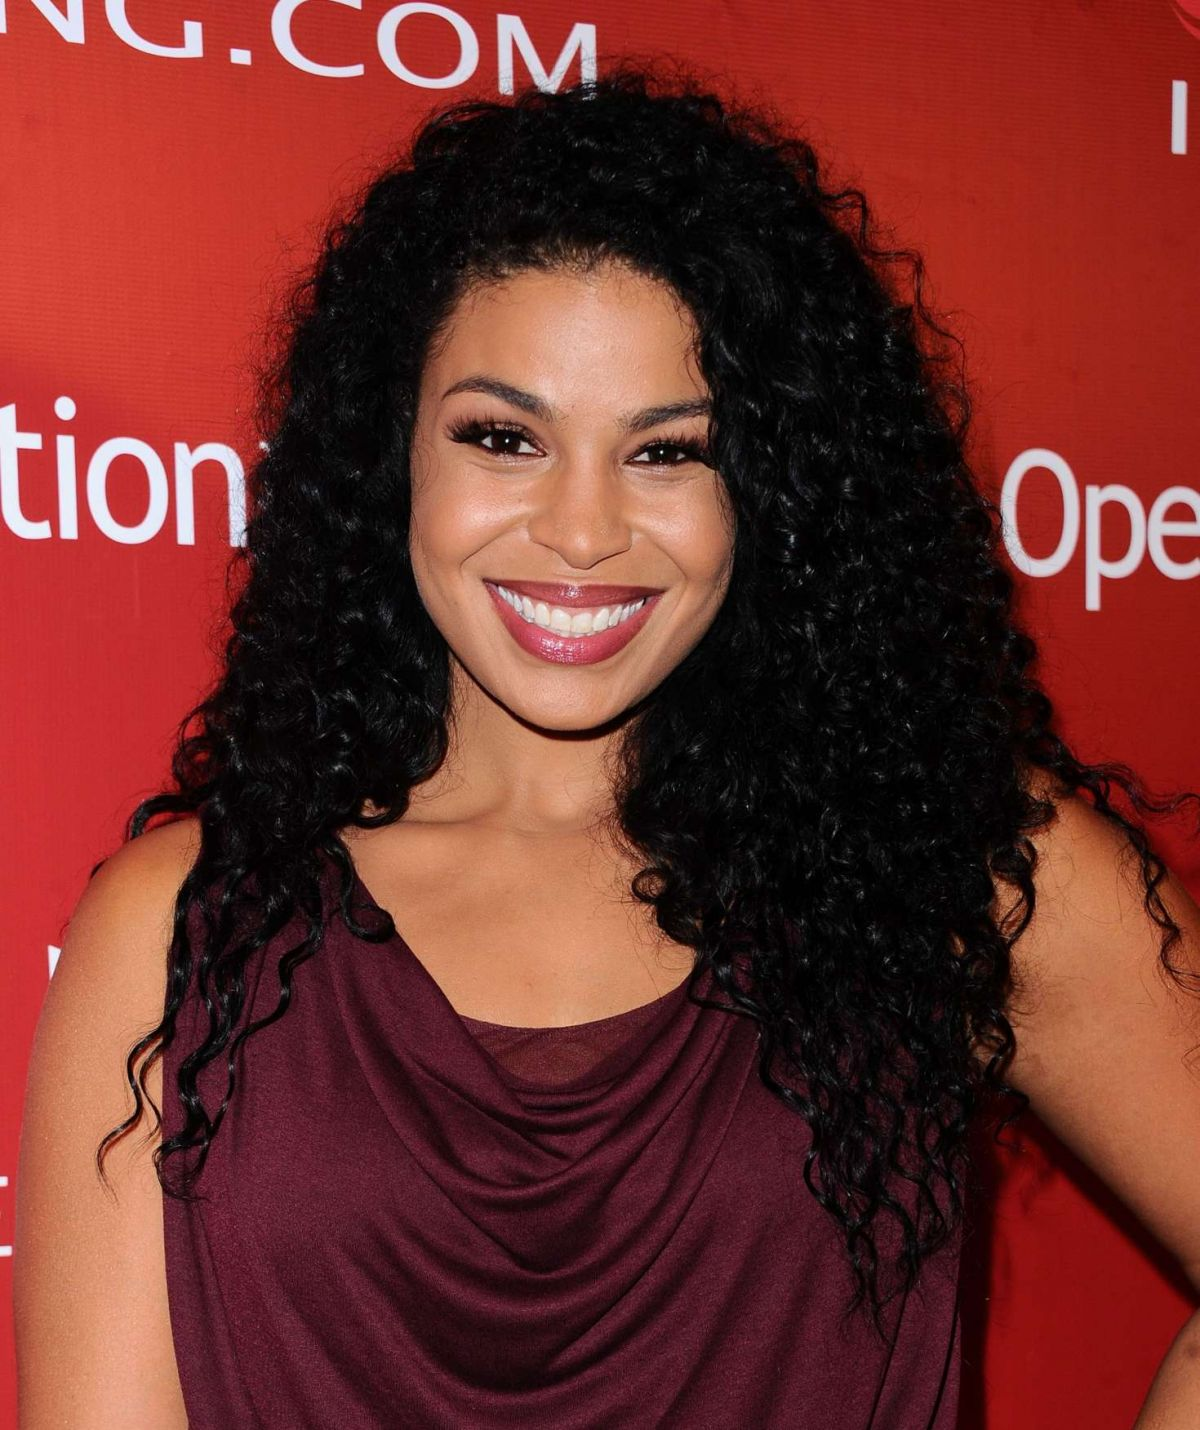 JORDIN SPARKS at Operation Smile Gala in Beverly Hills 09/30/2016